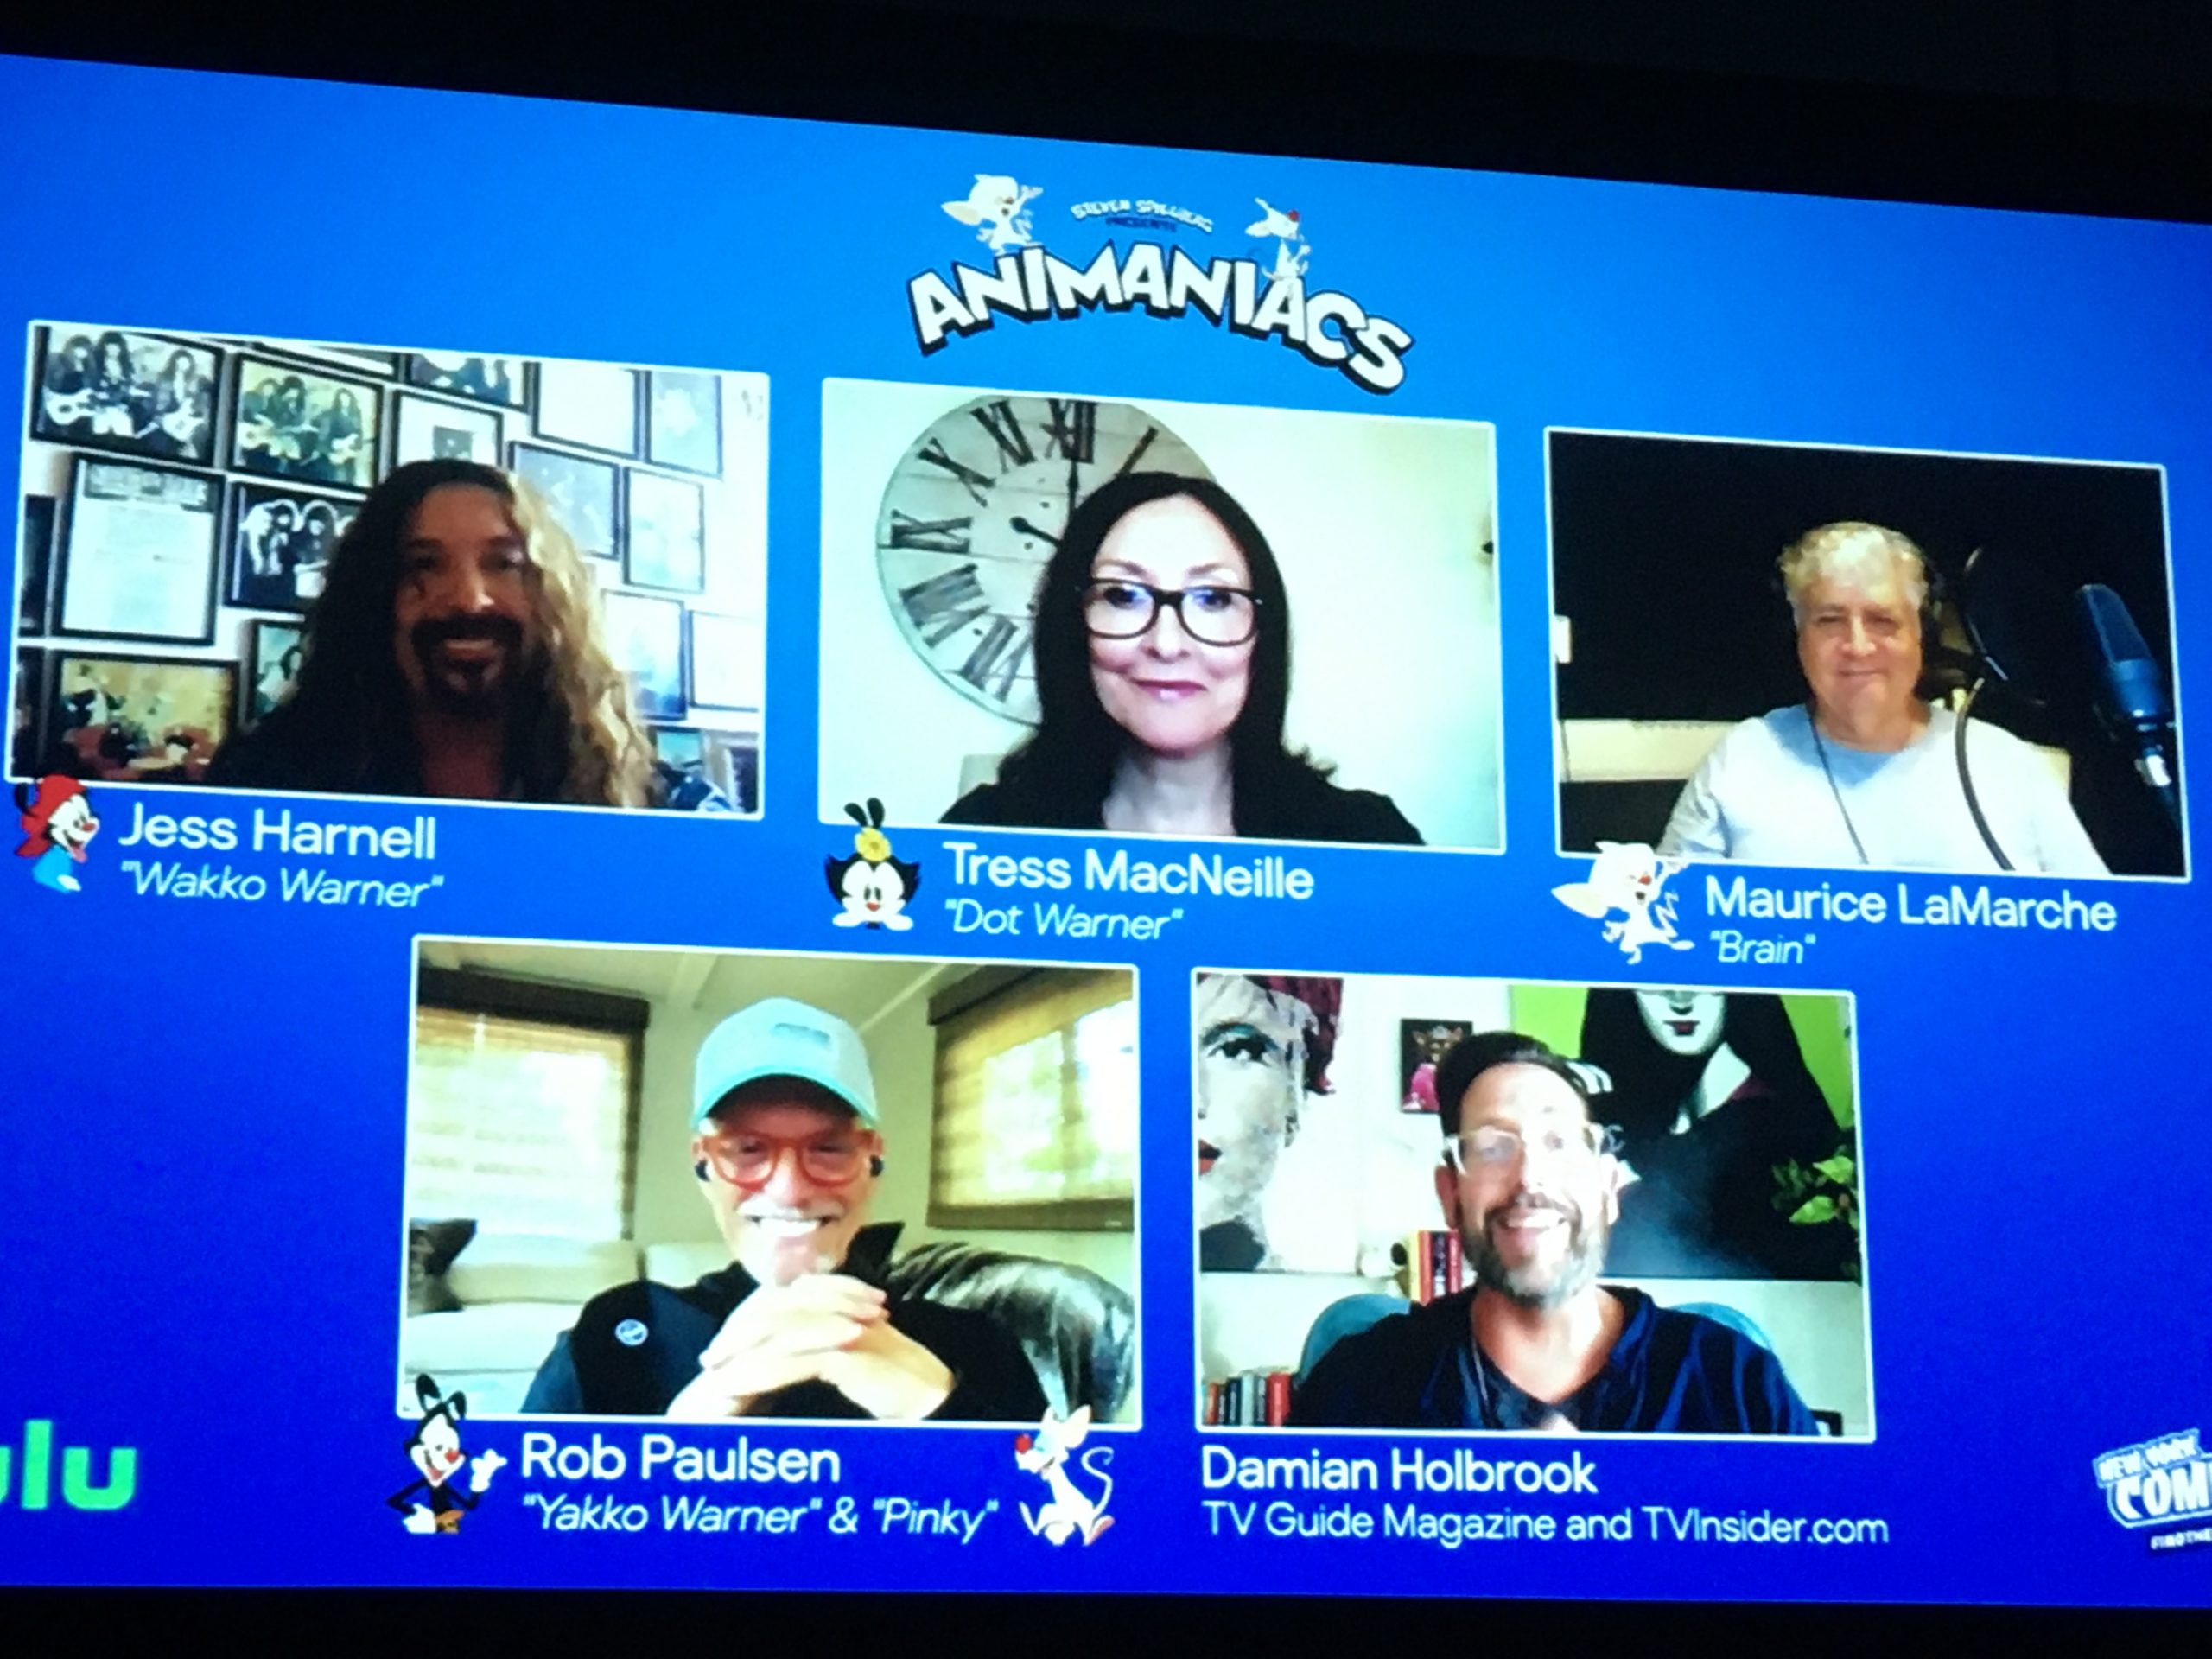 NYCC '21: It's time again for Animaniacs!